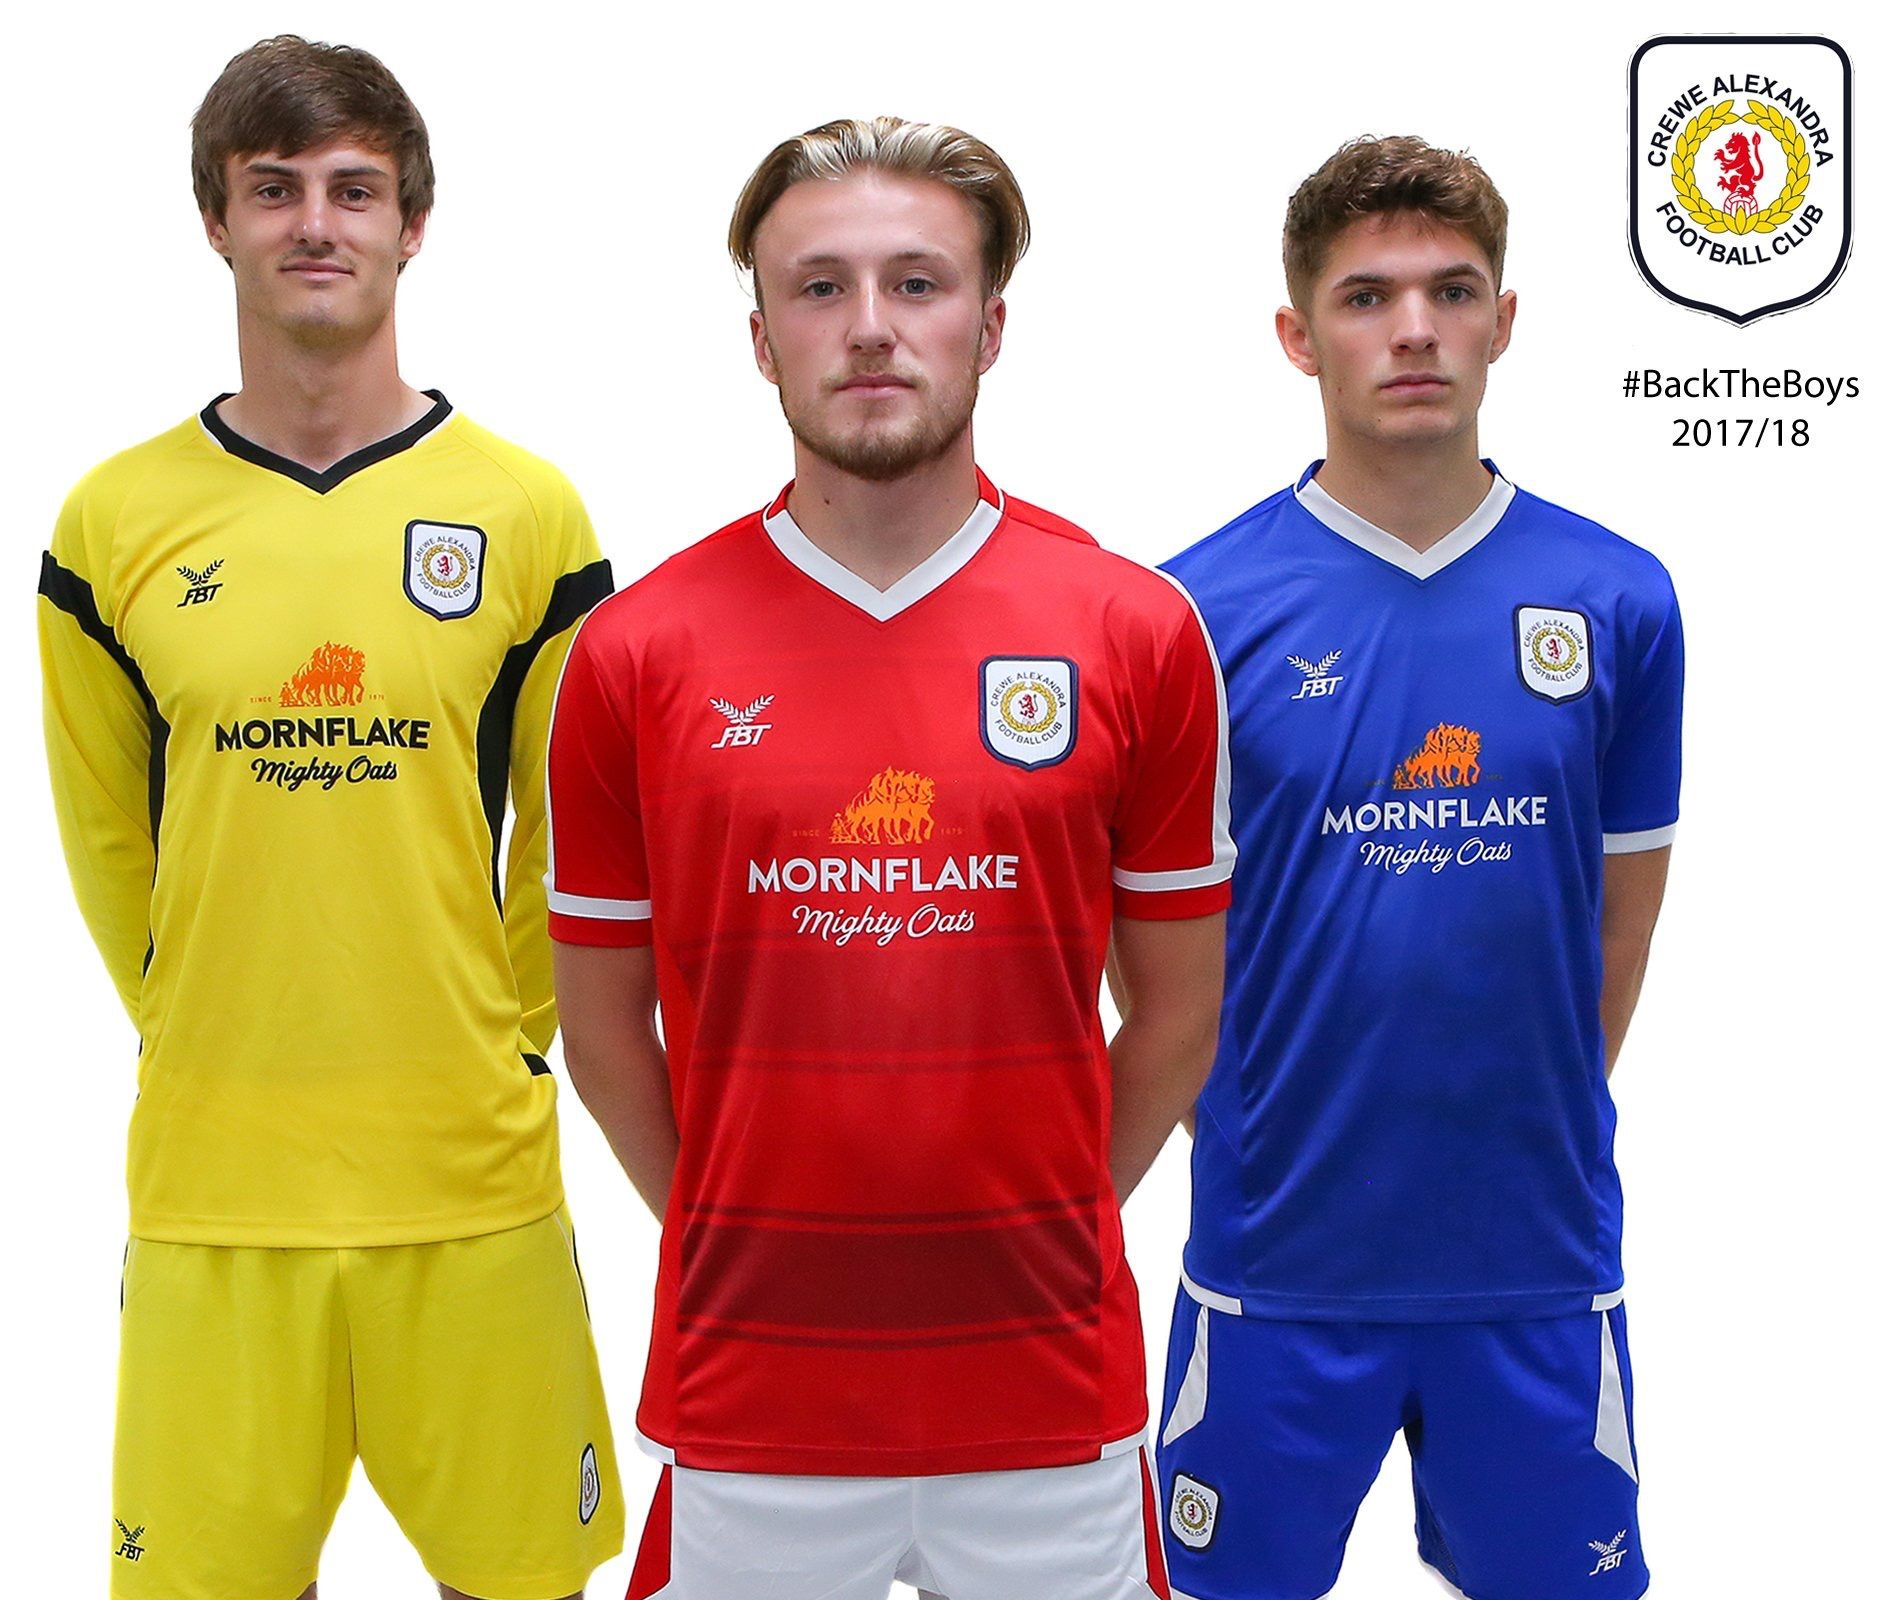 868ba016378 Bristol City 2017/2018 Home (Red), Away (Blue) and GK (Yellow) kits ...